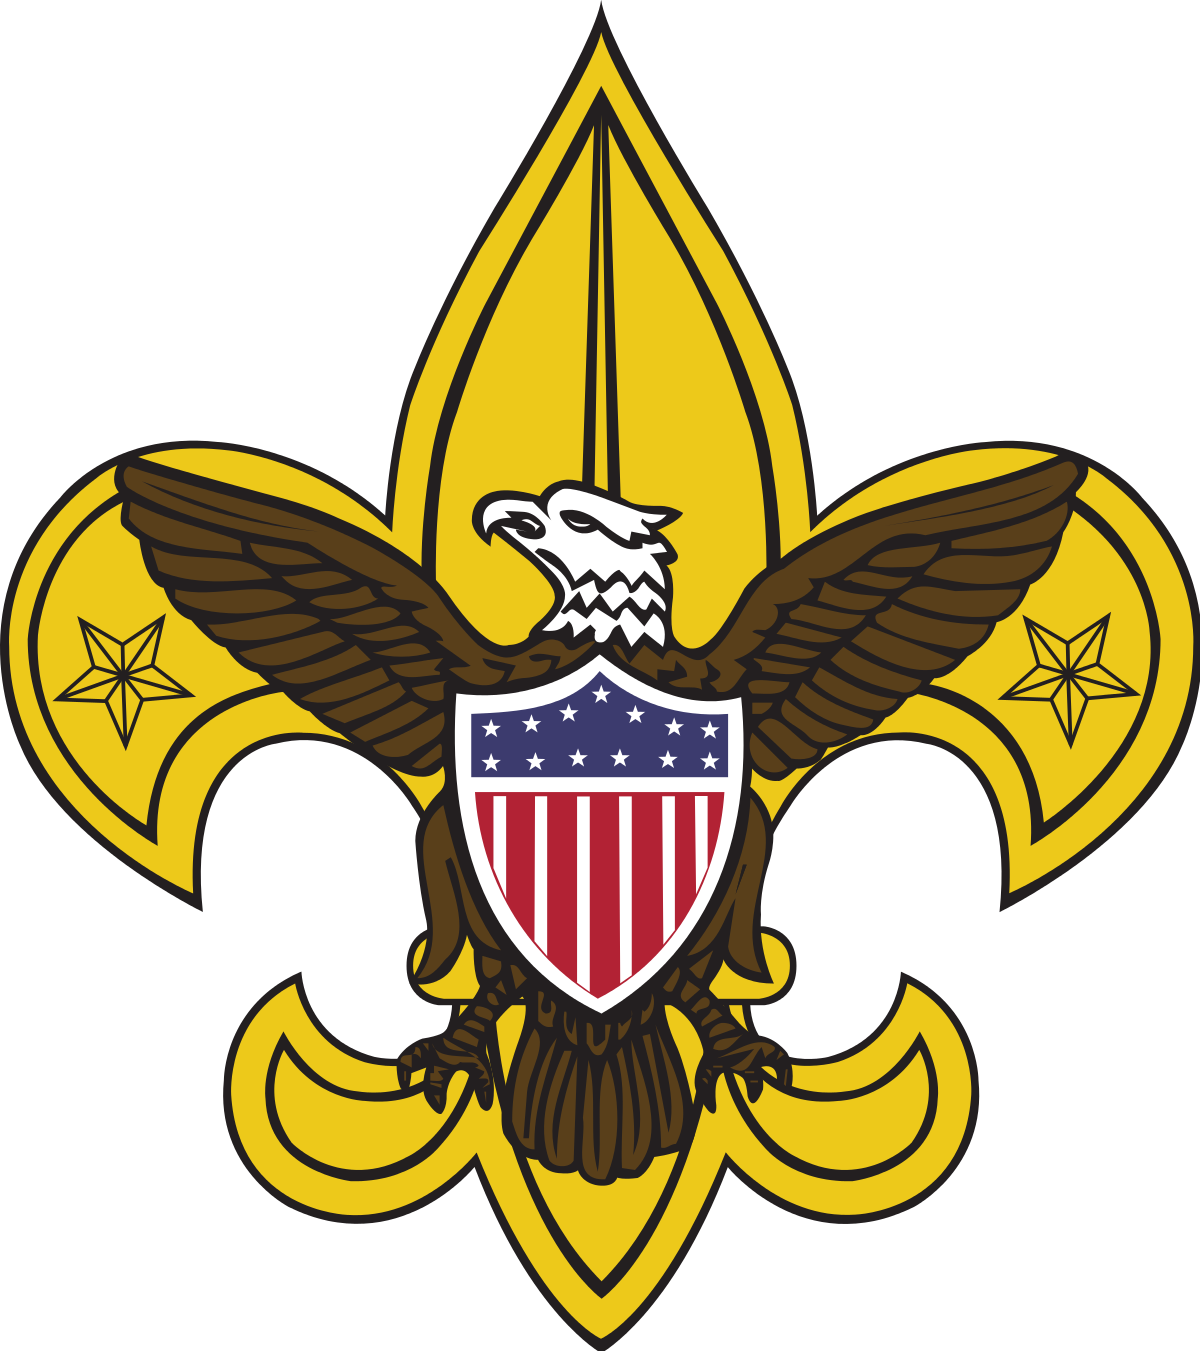 Boy scout star rank clipart clipart free download Boy Scouting (Boy Scouts of America) - Wikipedia clipart free download